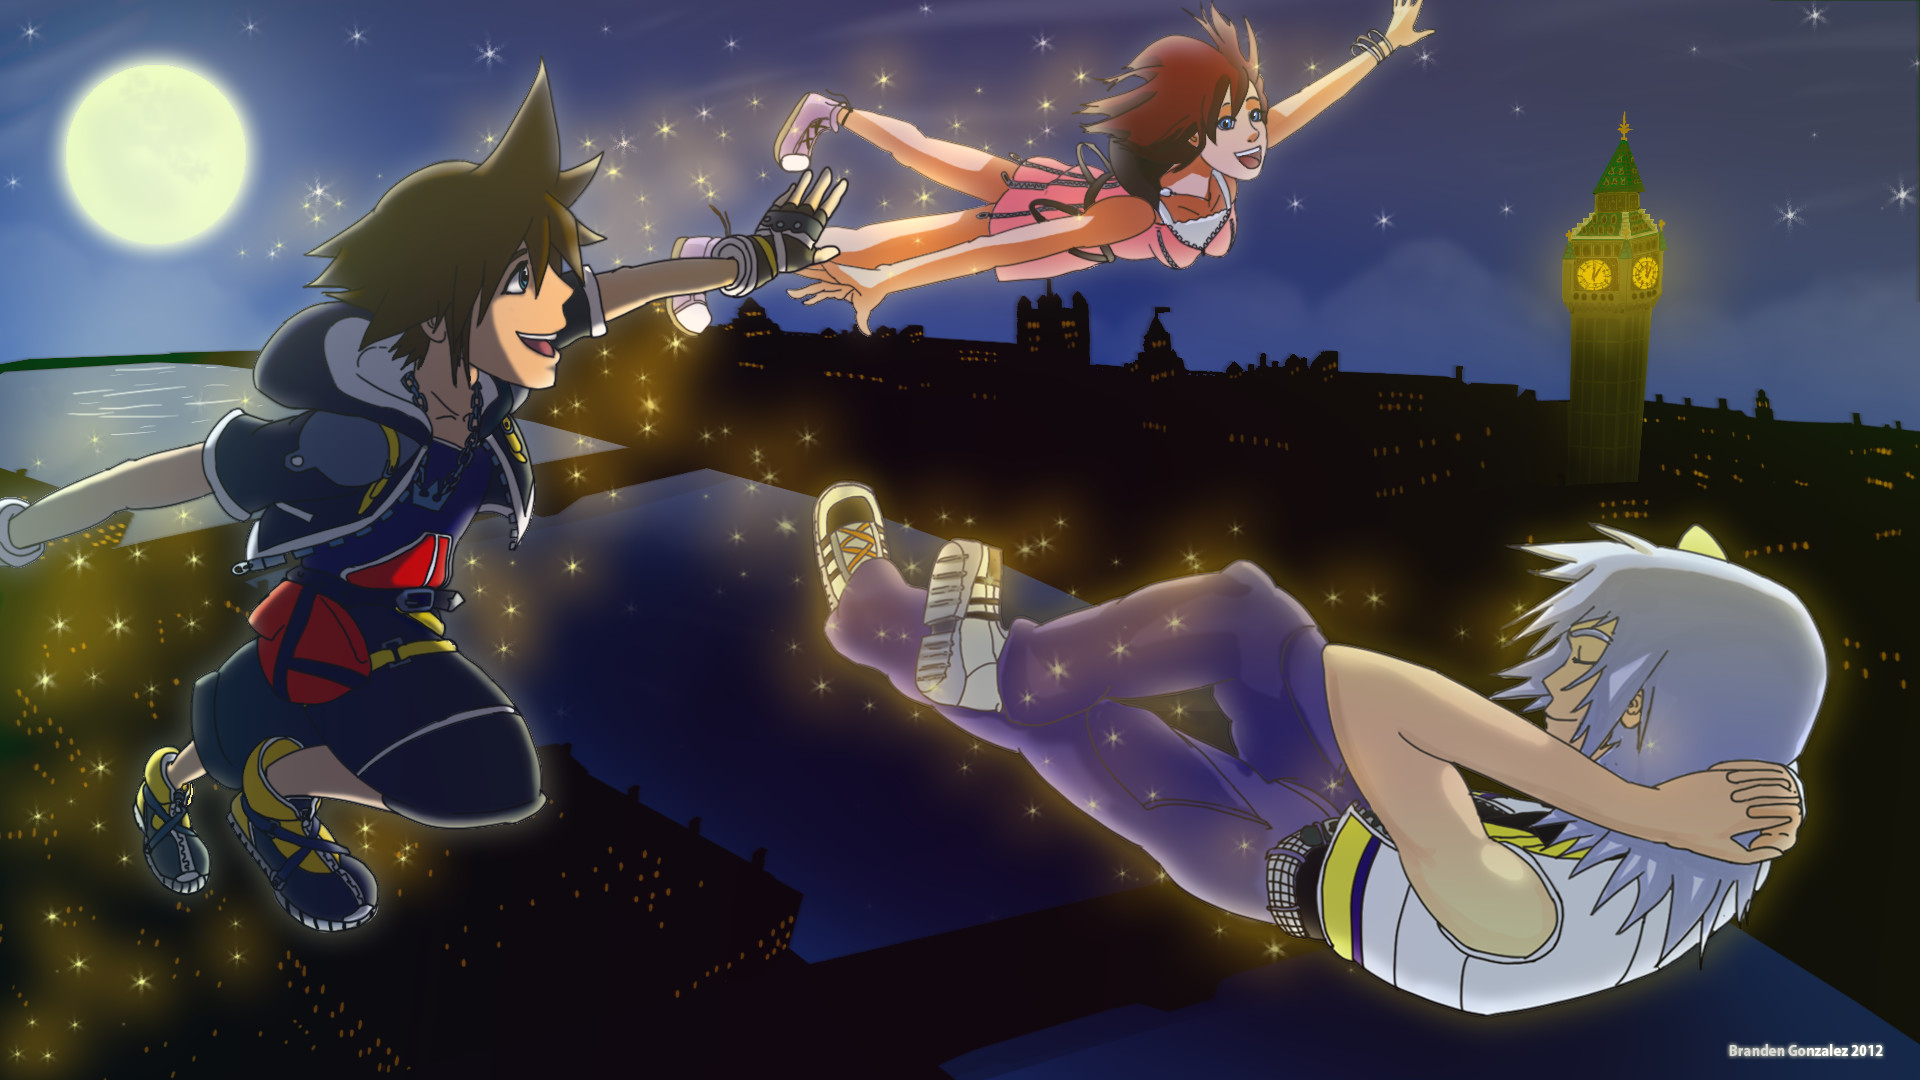 1920x1080 Kingdom Hearts Computer Wallpapers, Desktop Backgrounds |  .